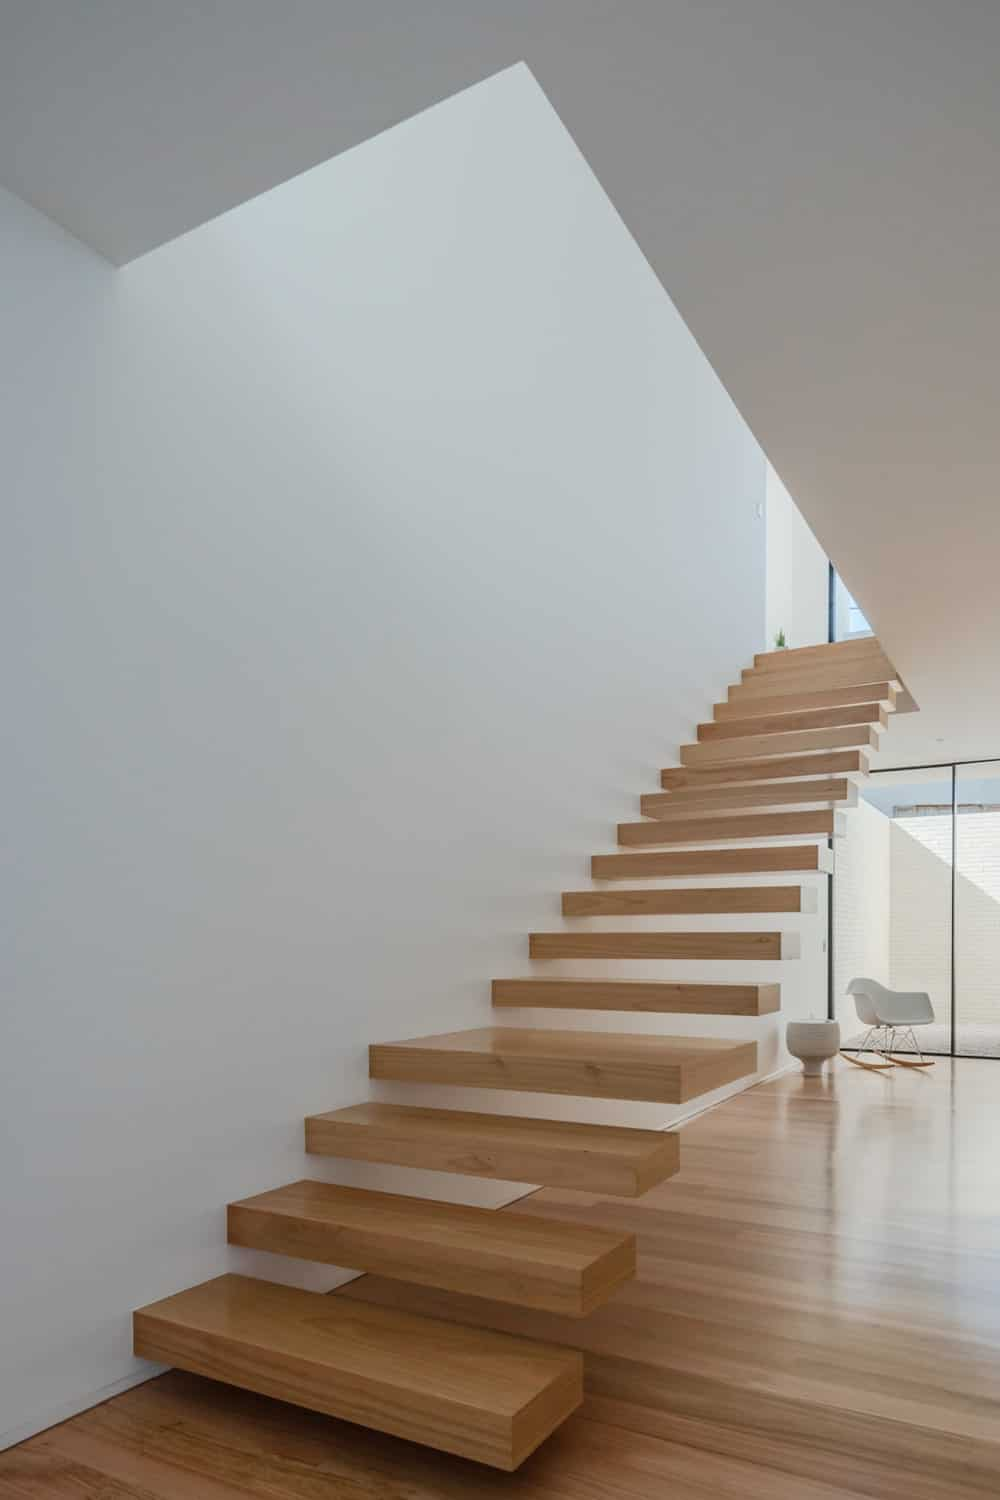 This is a look at the foyer that has a light hardwood flooring that matches with the wooden steps of the floating stairs. These are then complemented by the white walls and ceiling.